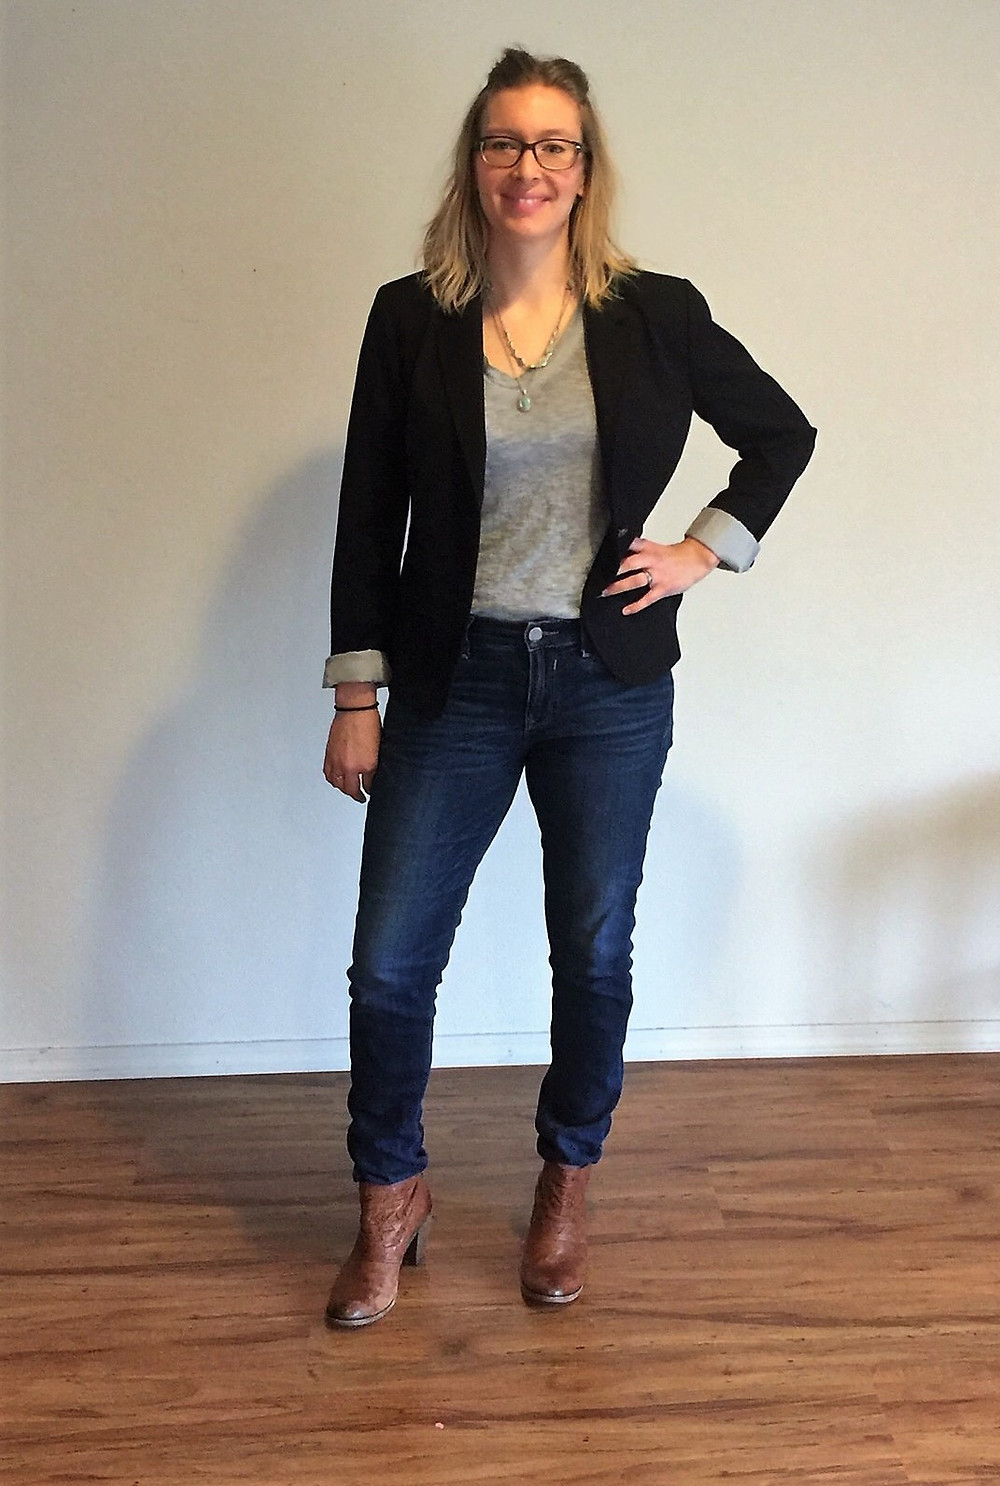 Maria wearing black blazer with v neck and jeans